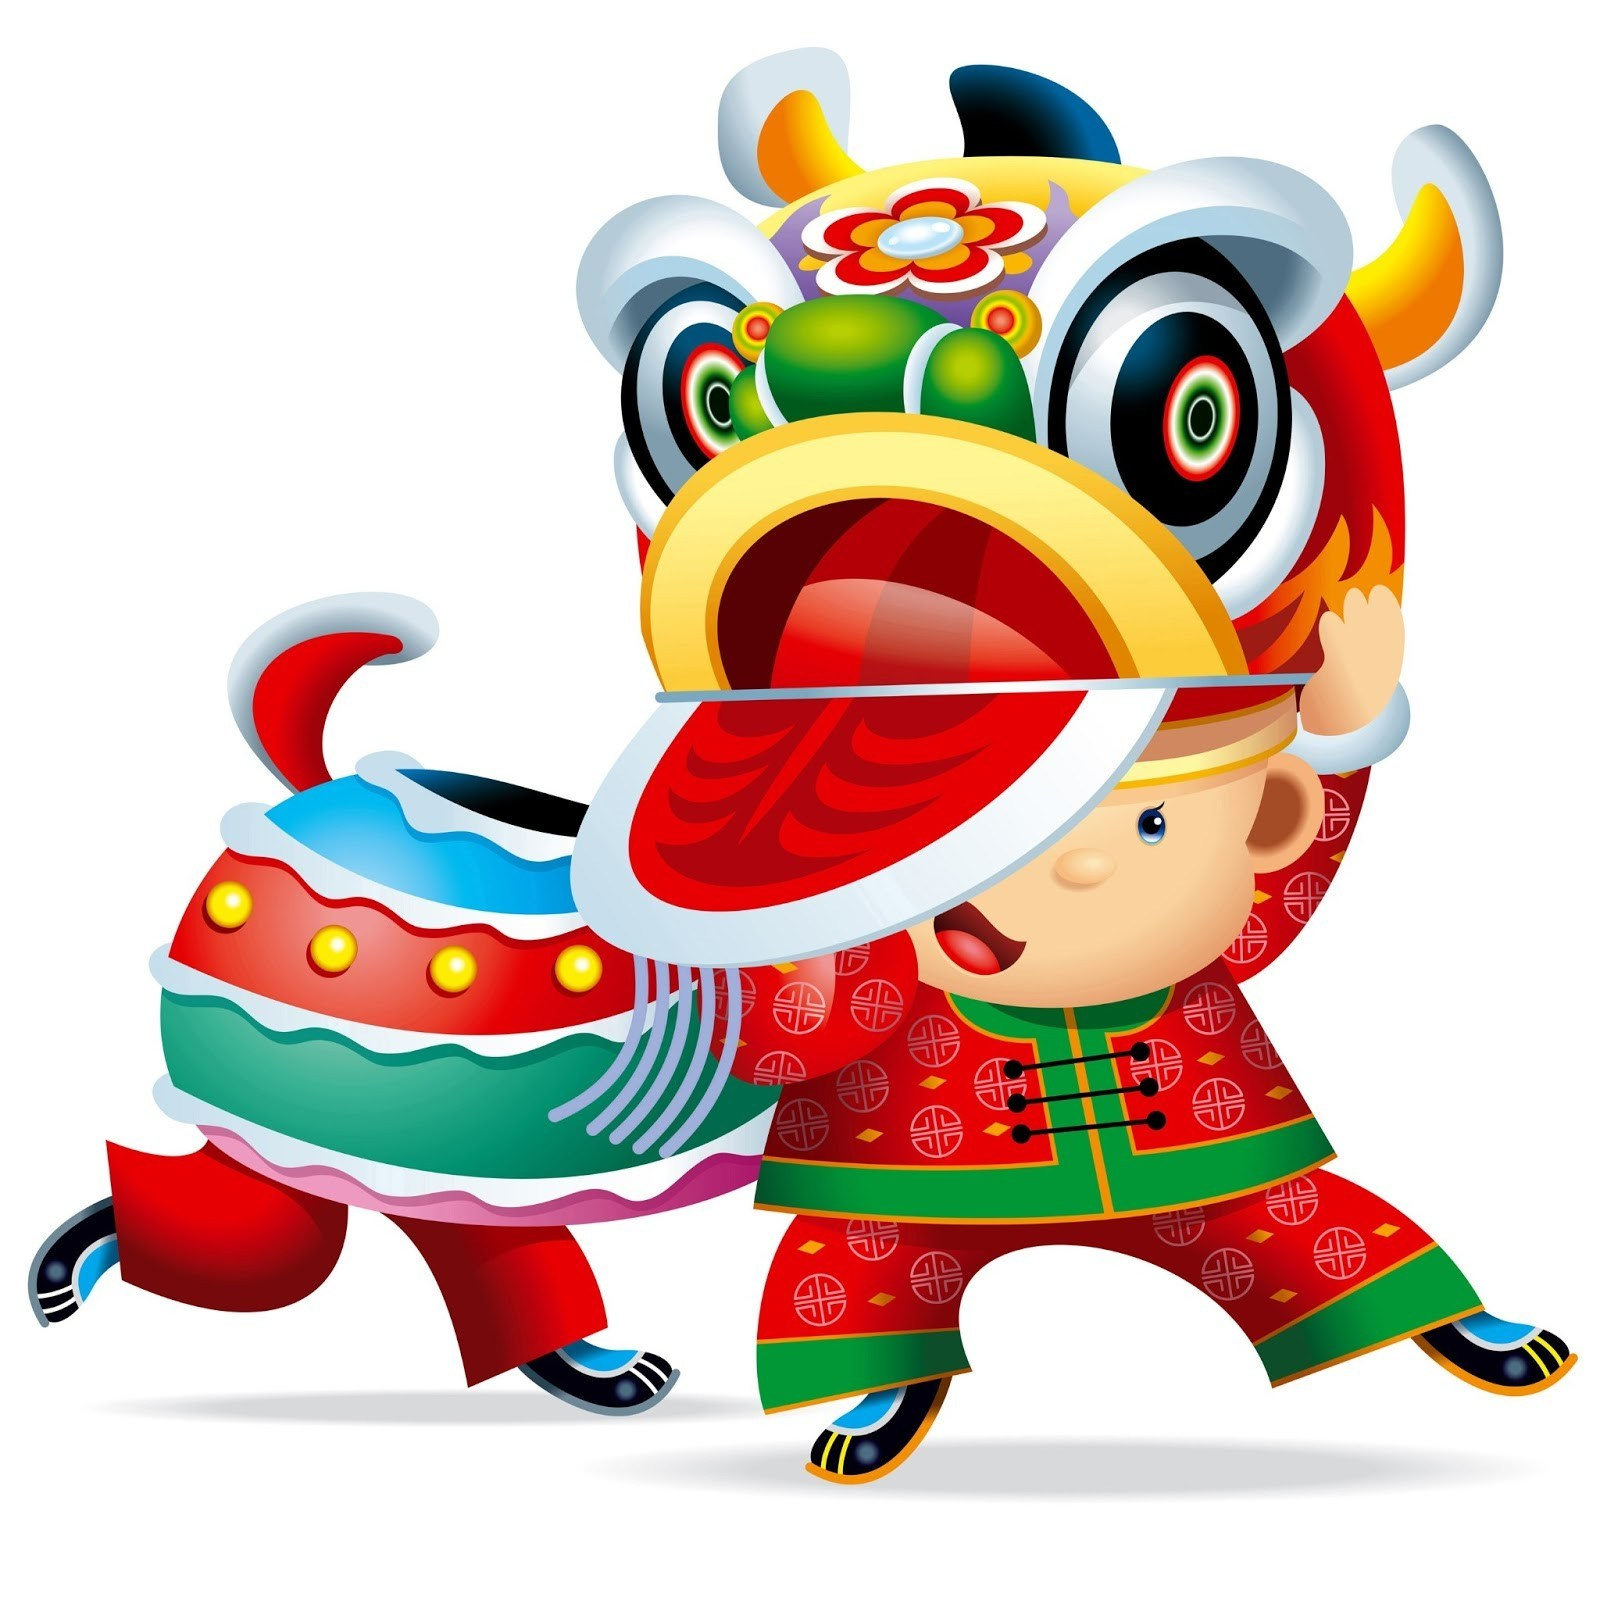 Chinese new year clipart free download 2 » Clipart Portal.